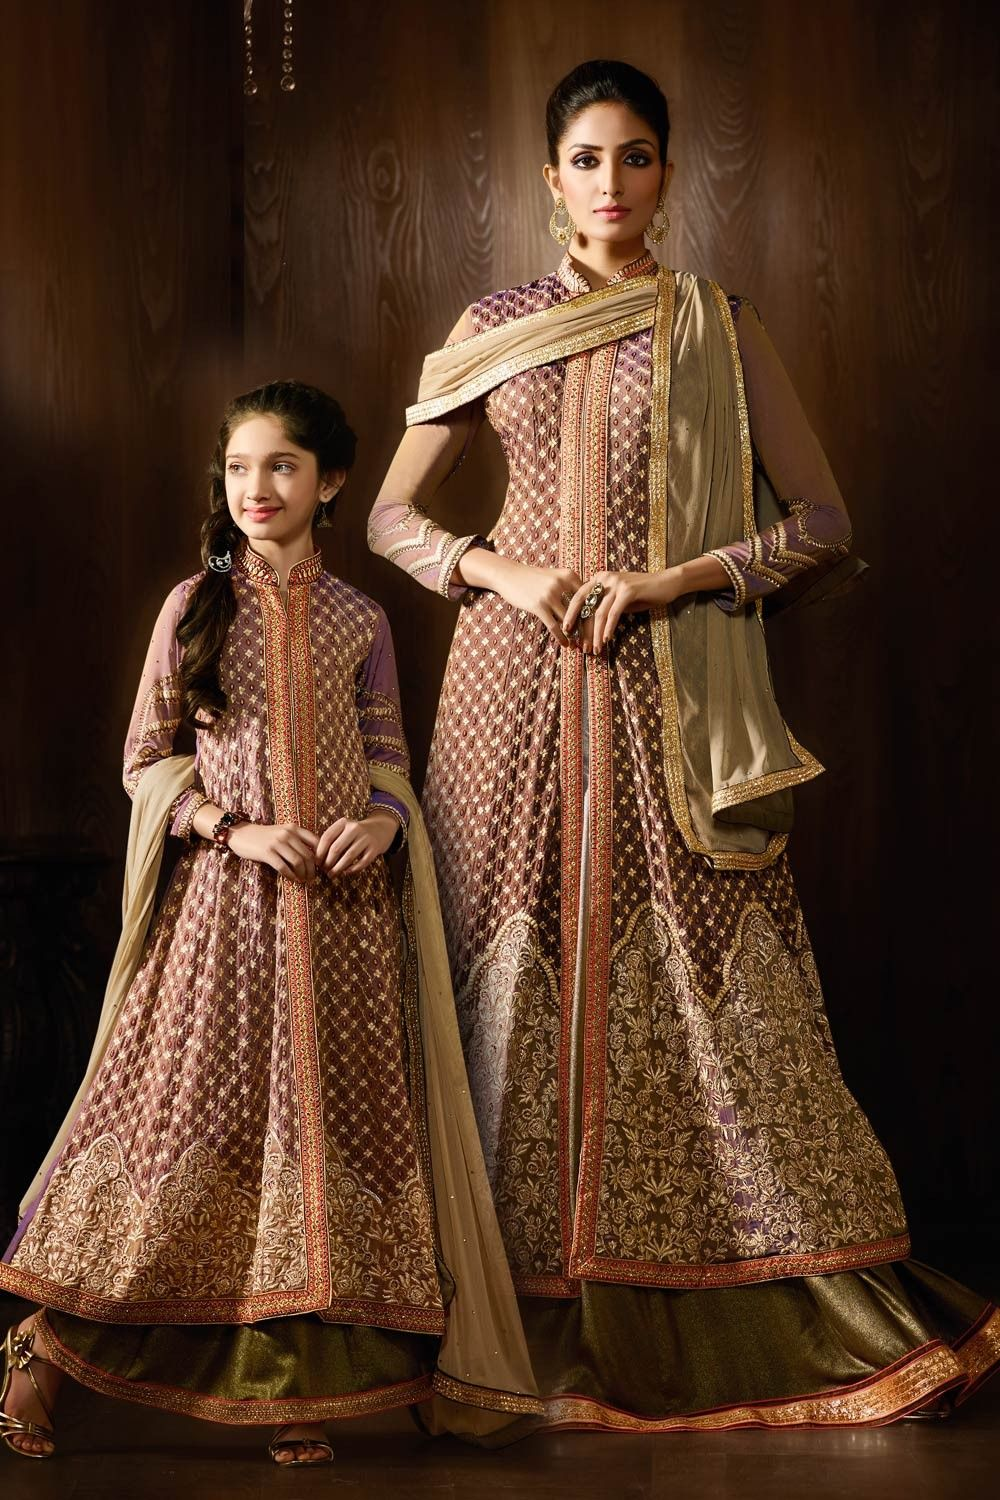 747c6059f776 same dress for young girls mom   baby girl LATEST BROWN GEORGETTE ANARKALI  LEHENGA SUIT SAME DRESS FOR MOM AND DAUGTER